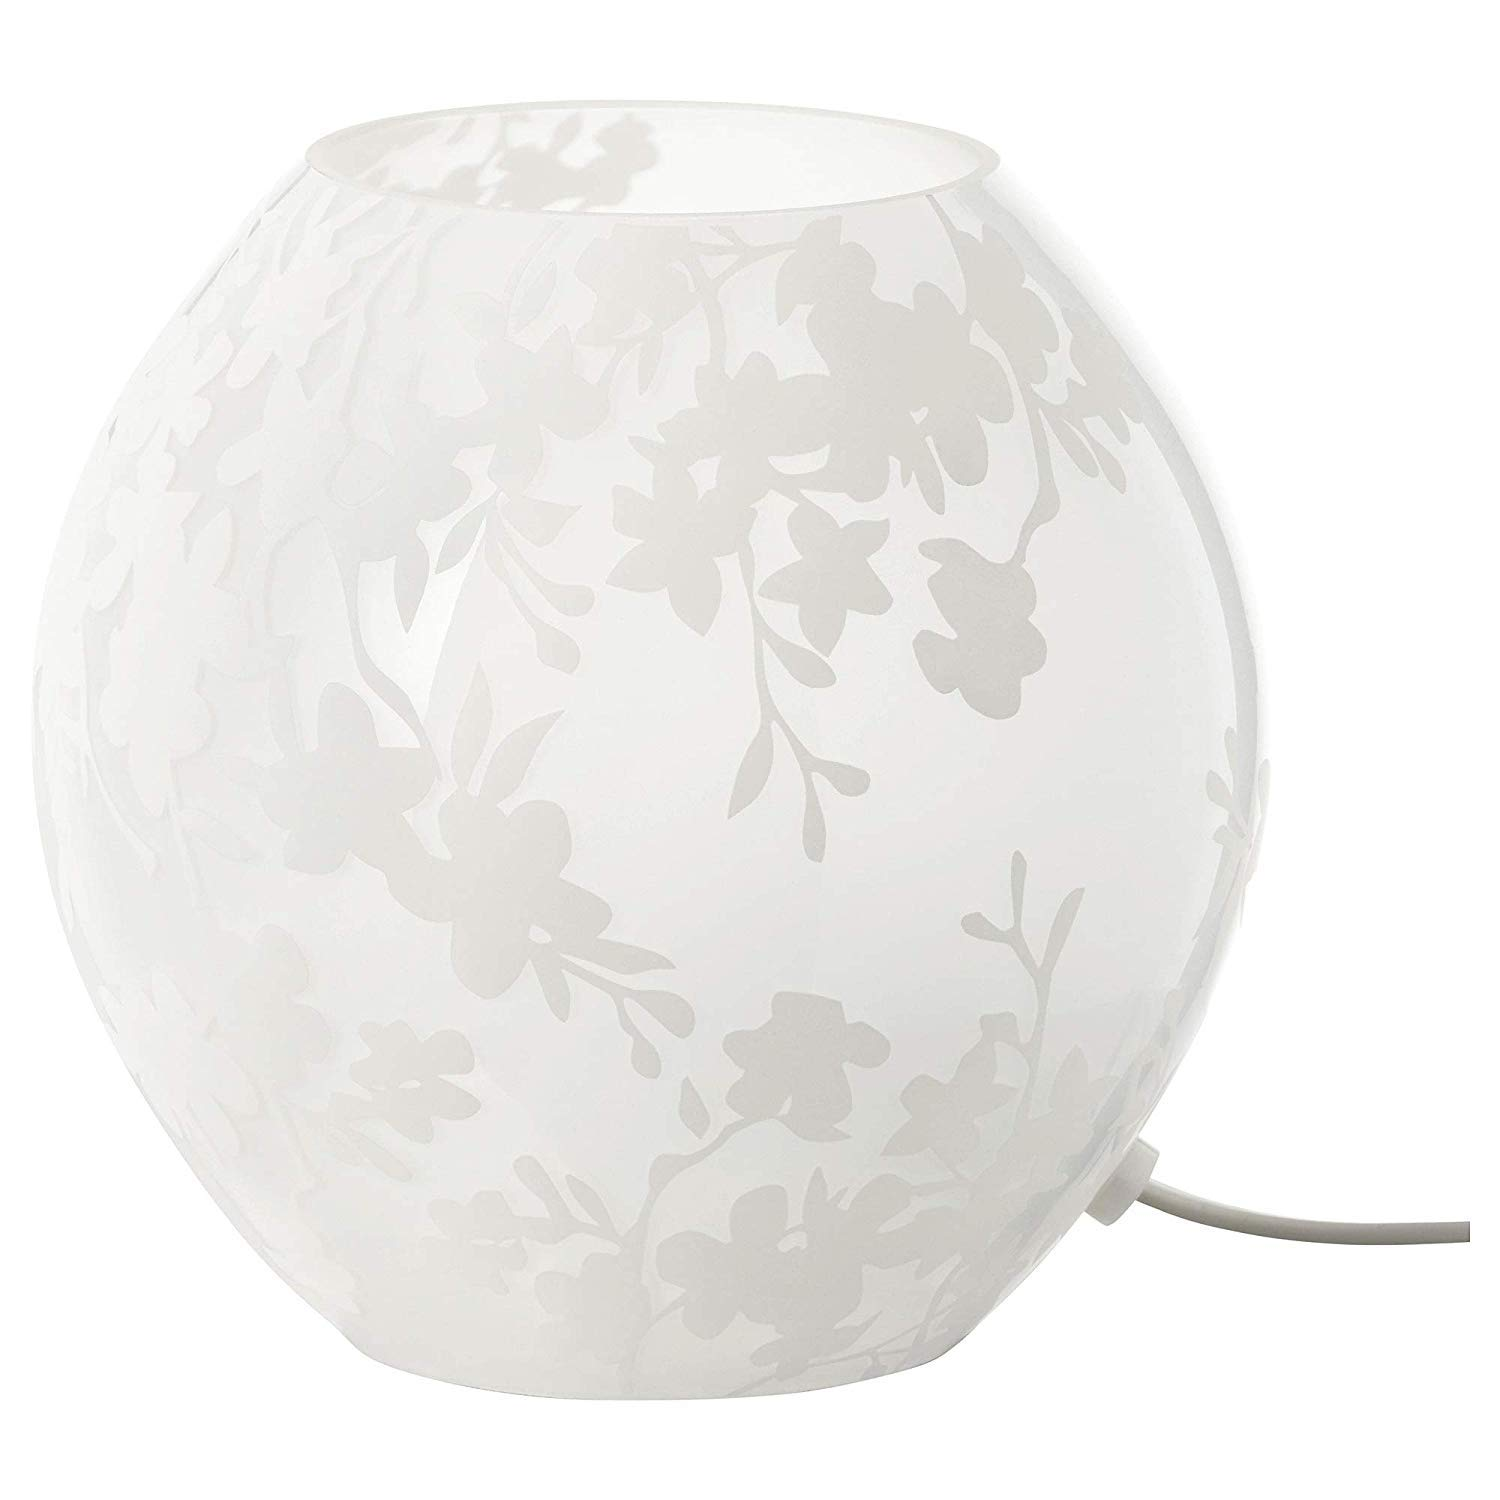 IKEA KNUBBIG Table lamp, cherry blossoms white 18 cm